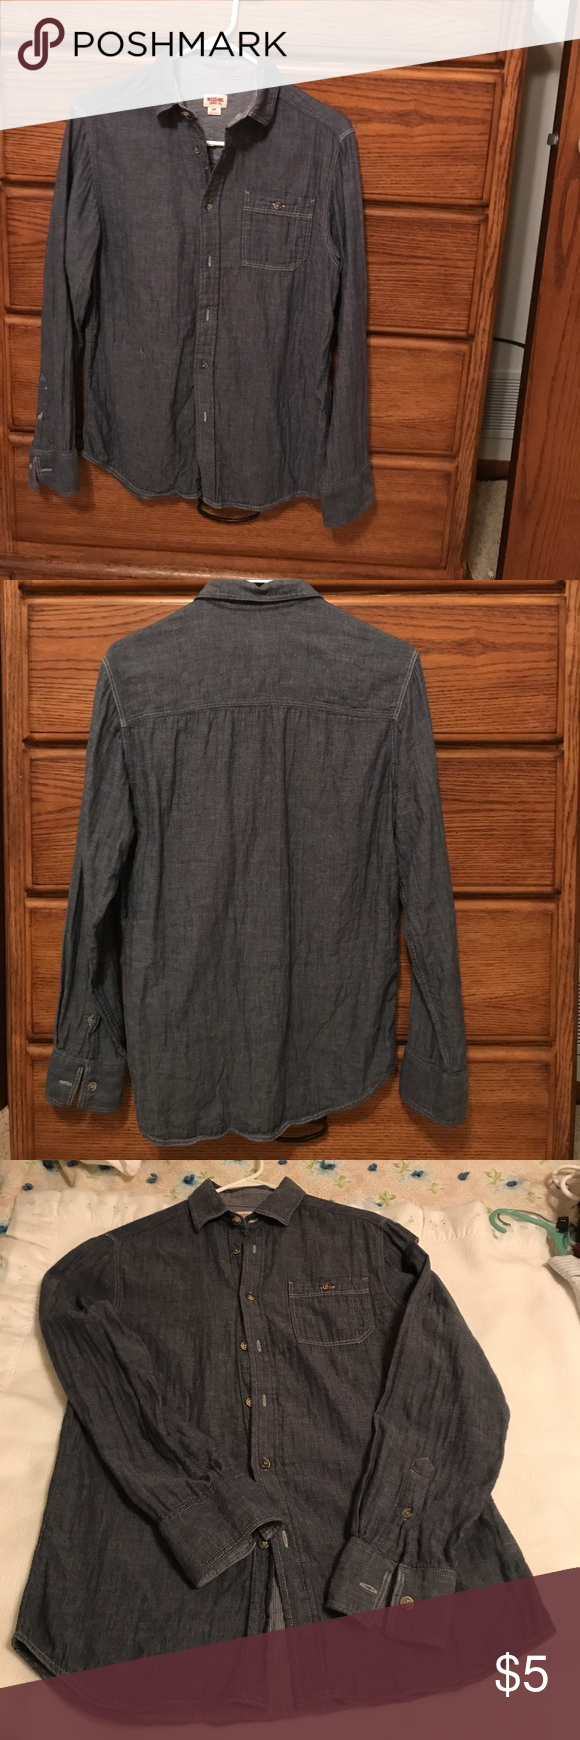 Mossimo young men's long sleeve denim button down Denim button down. Soft and broken in. Great for back to school. Made from recycled plastic. Small fray on lower front right side. Cannot really see it from a distance. See photo. Priced accordingly. Mossimo Supply Co Shirts Casual Button Down Shirts